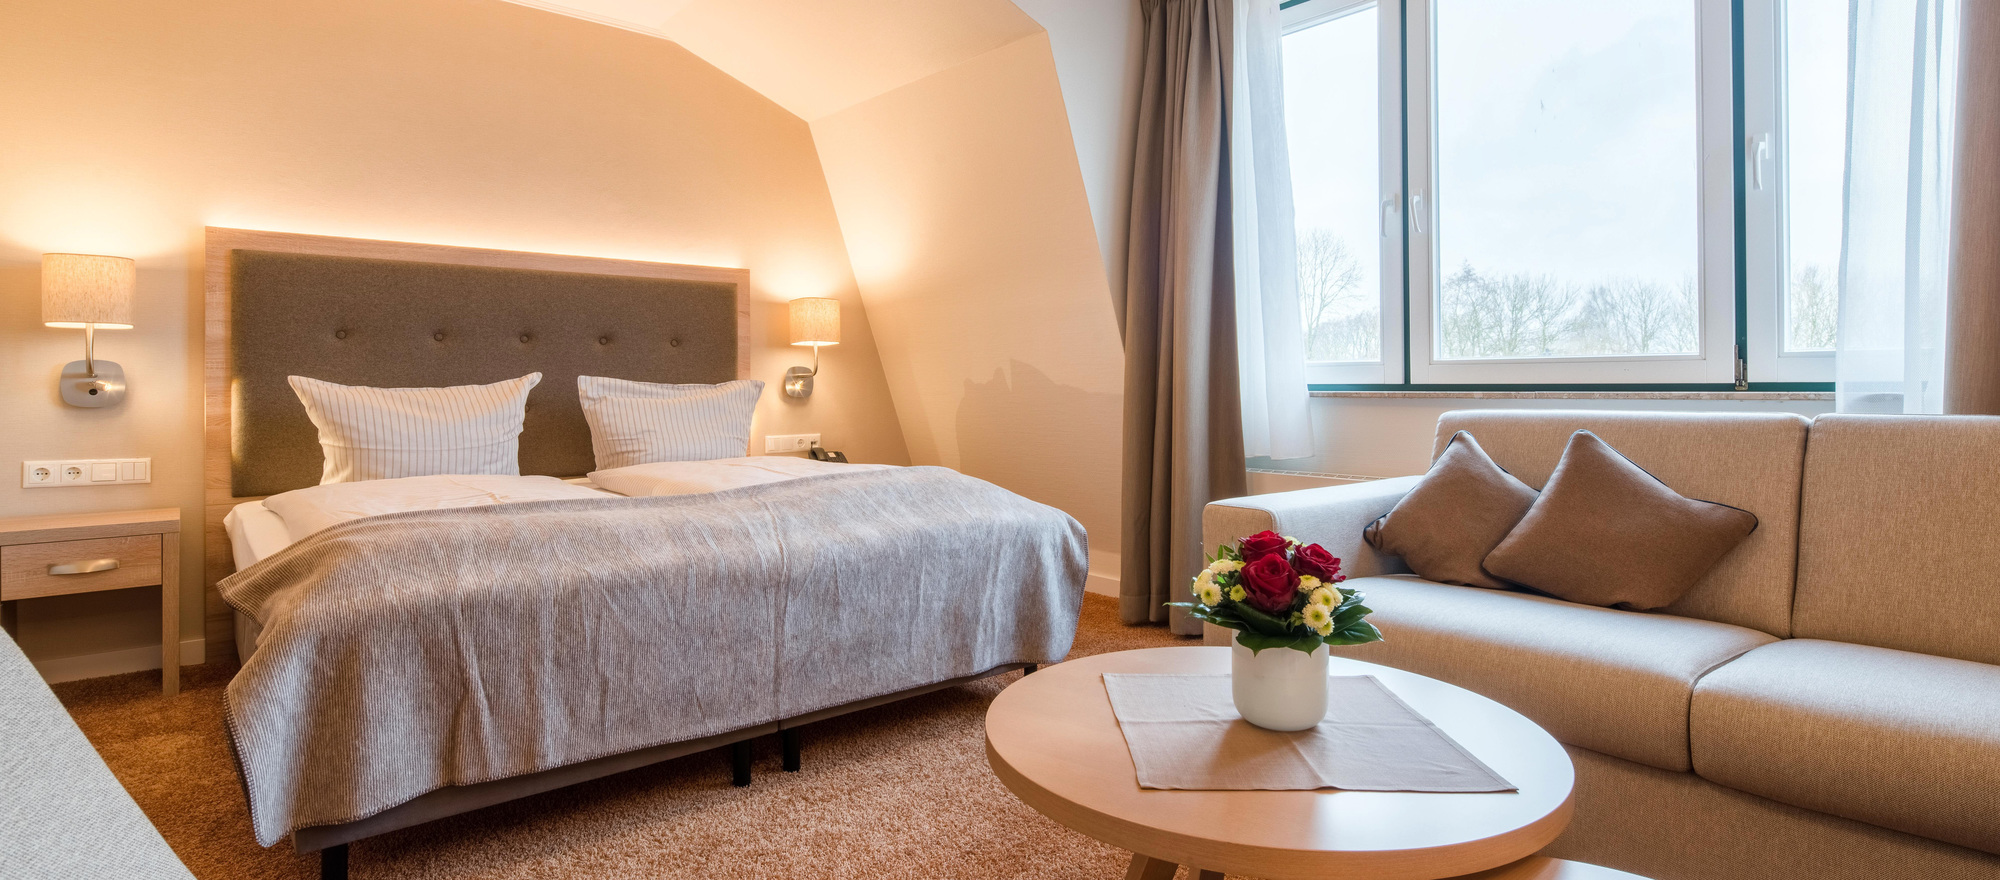 Deluxe Room with cozy sofa corner at the 4-star hotel Ringhotel Altes Zollhaus in Horumersiel